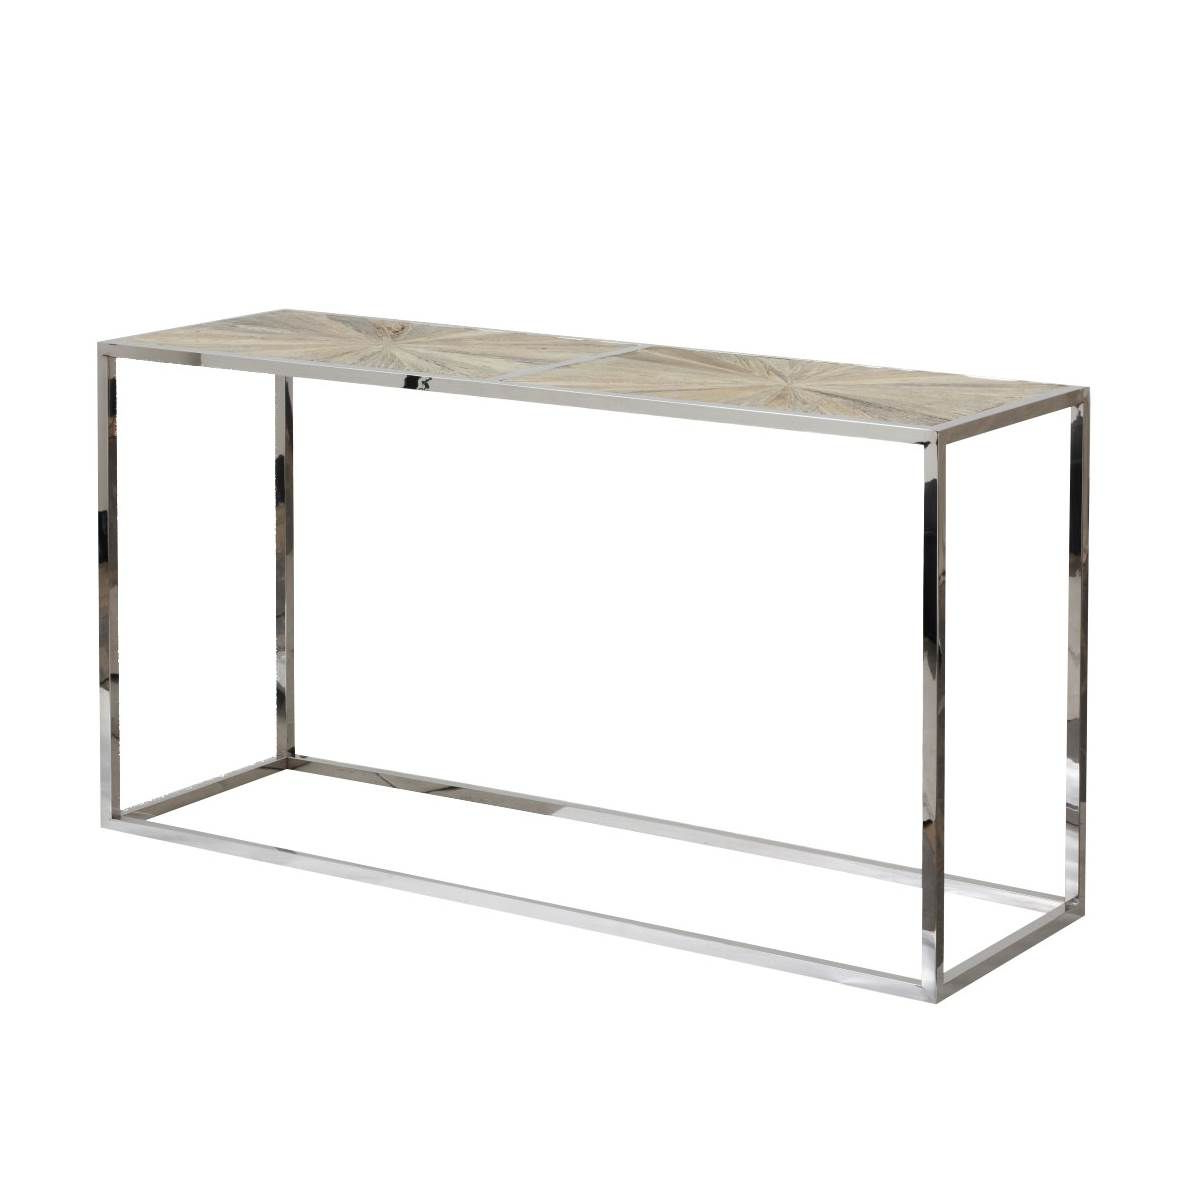 Parquet Console Table | Marshall | Pinterest Regarding Parsons White Marble Top & Stainless Steel Base 48X16 Console Tables (View 12 of 20)